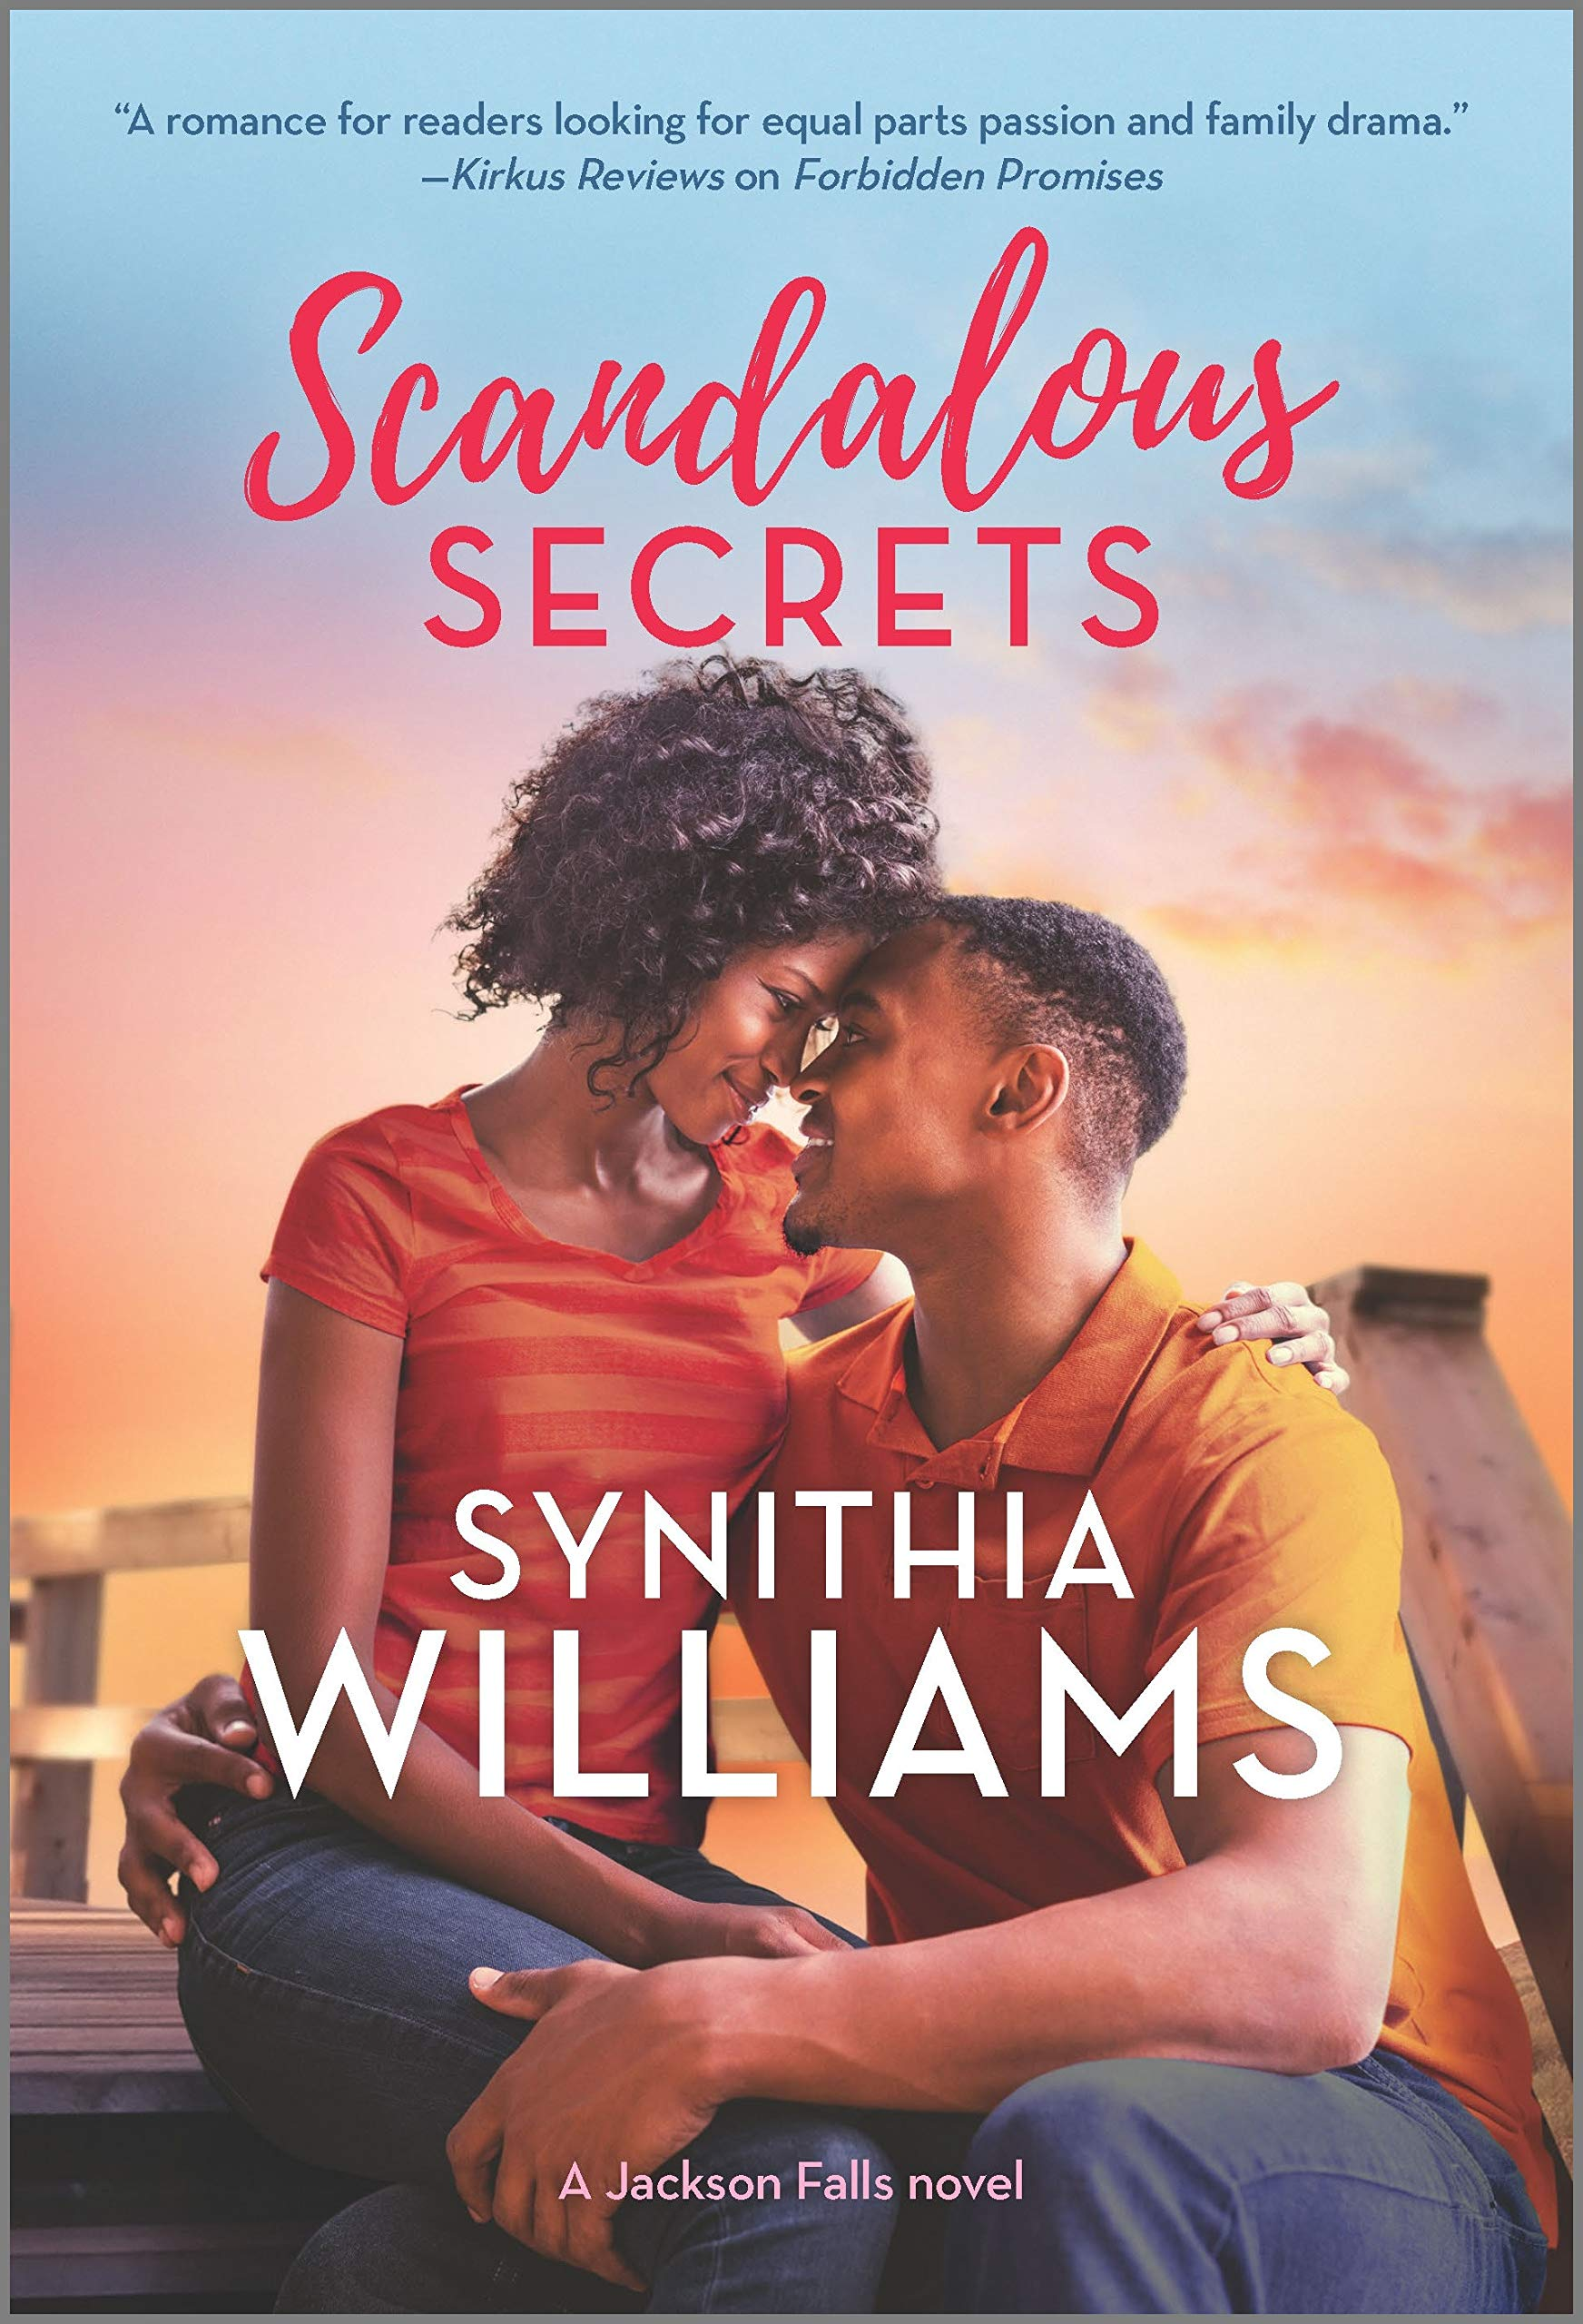 Scandalous Secrets by Synithia Williams